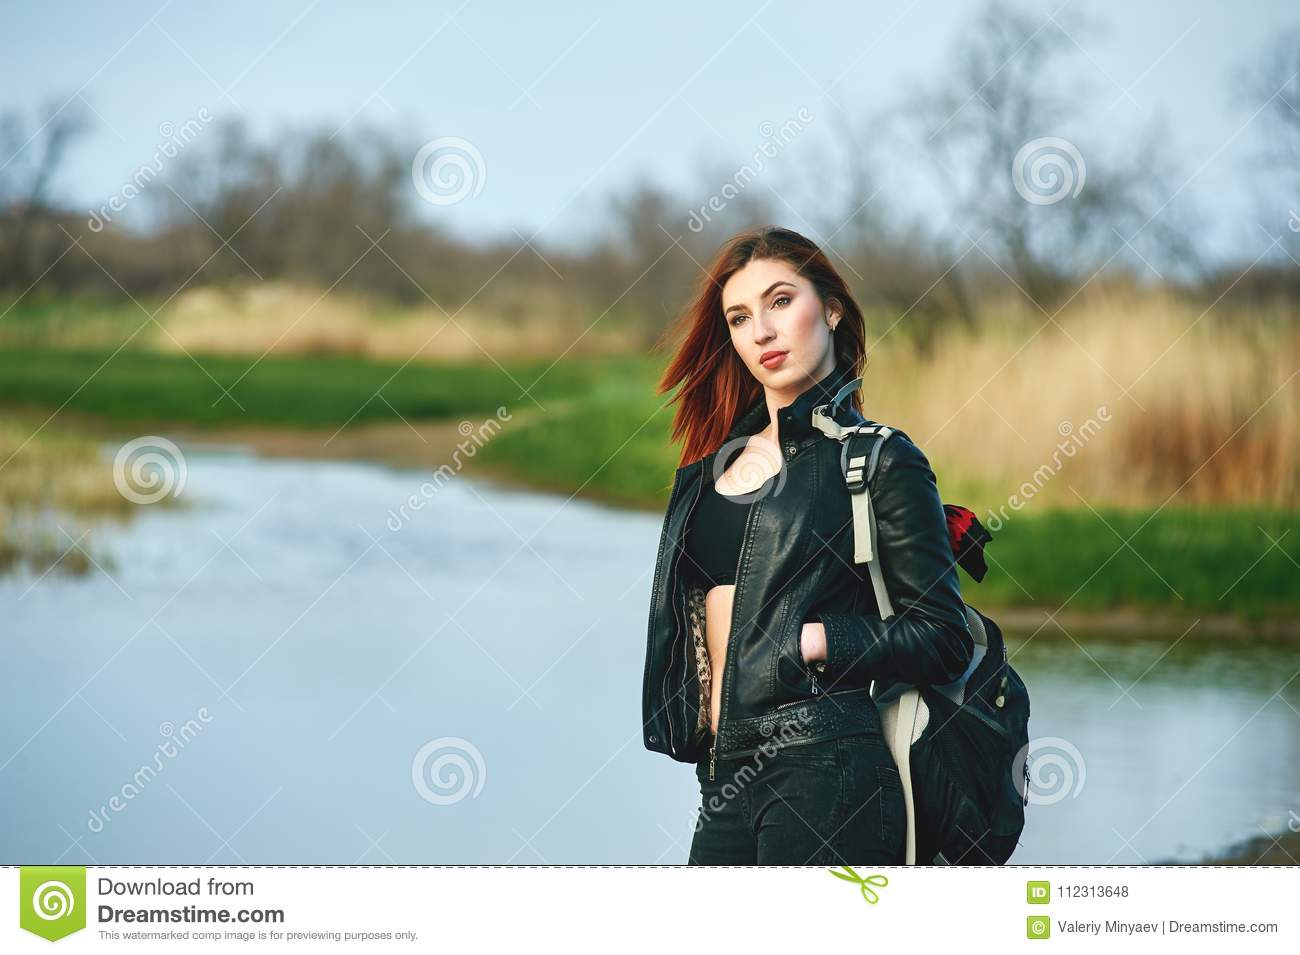 Cheerful young woman on spring walk